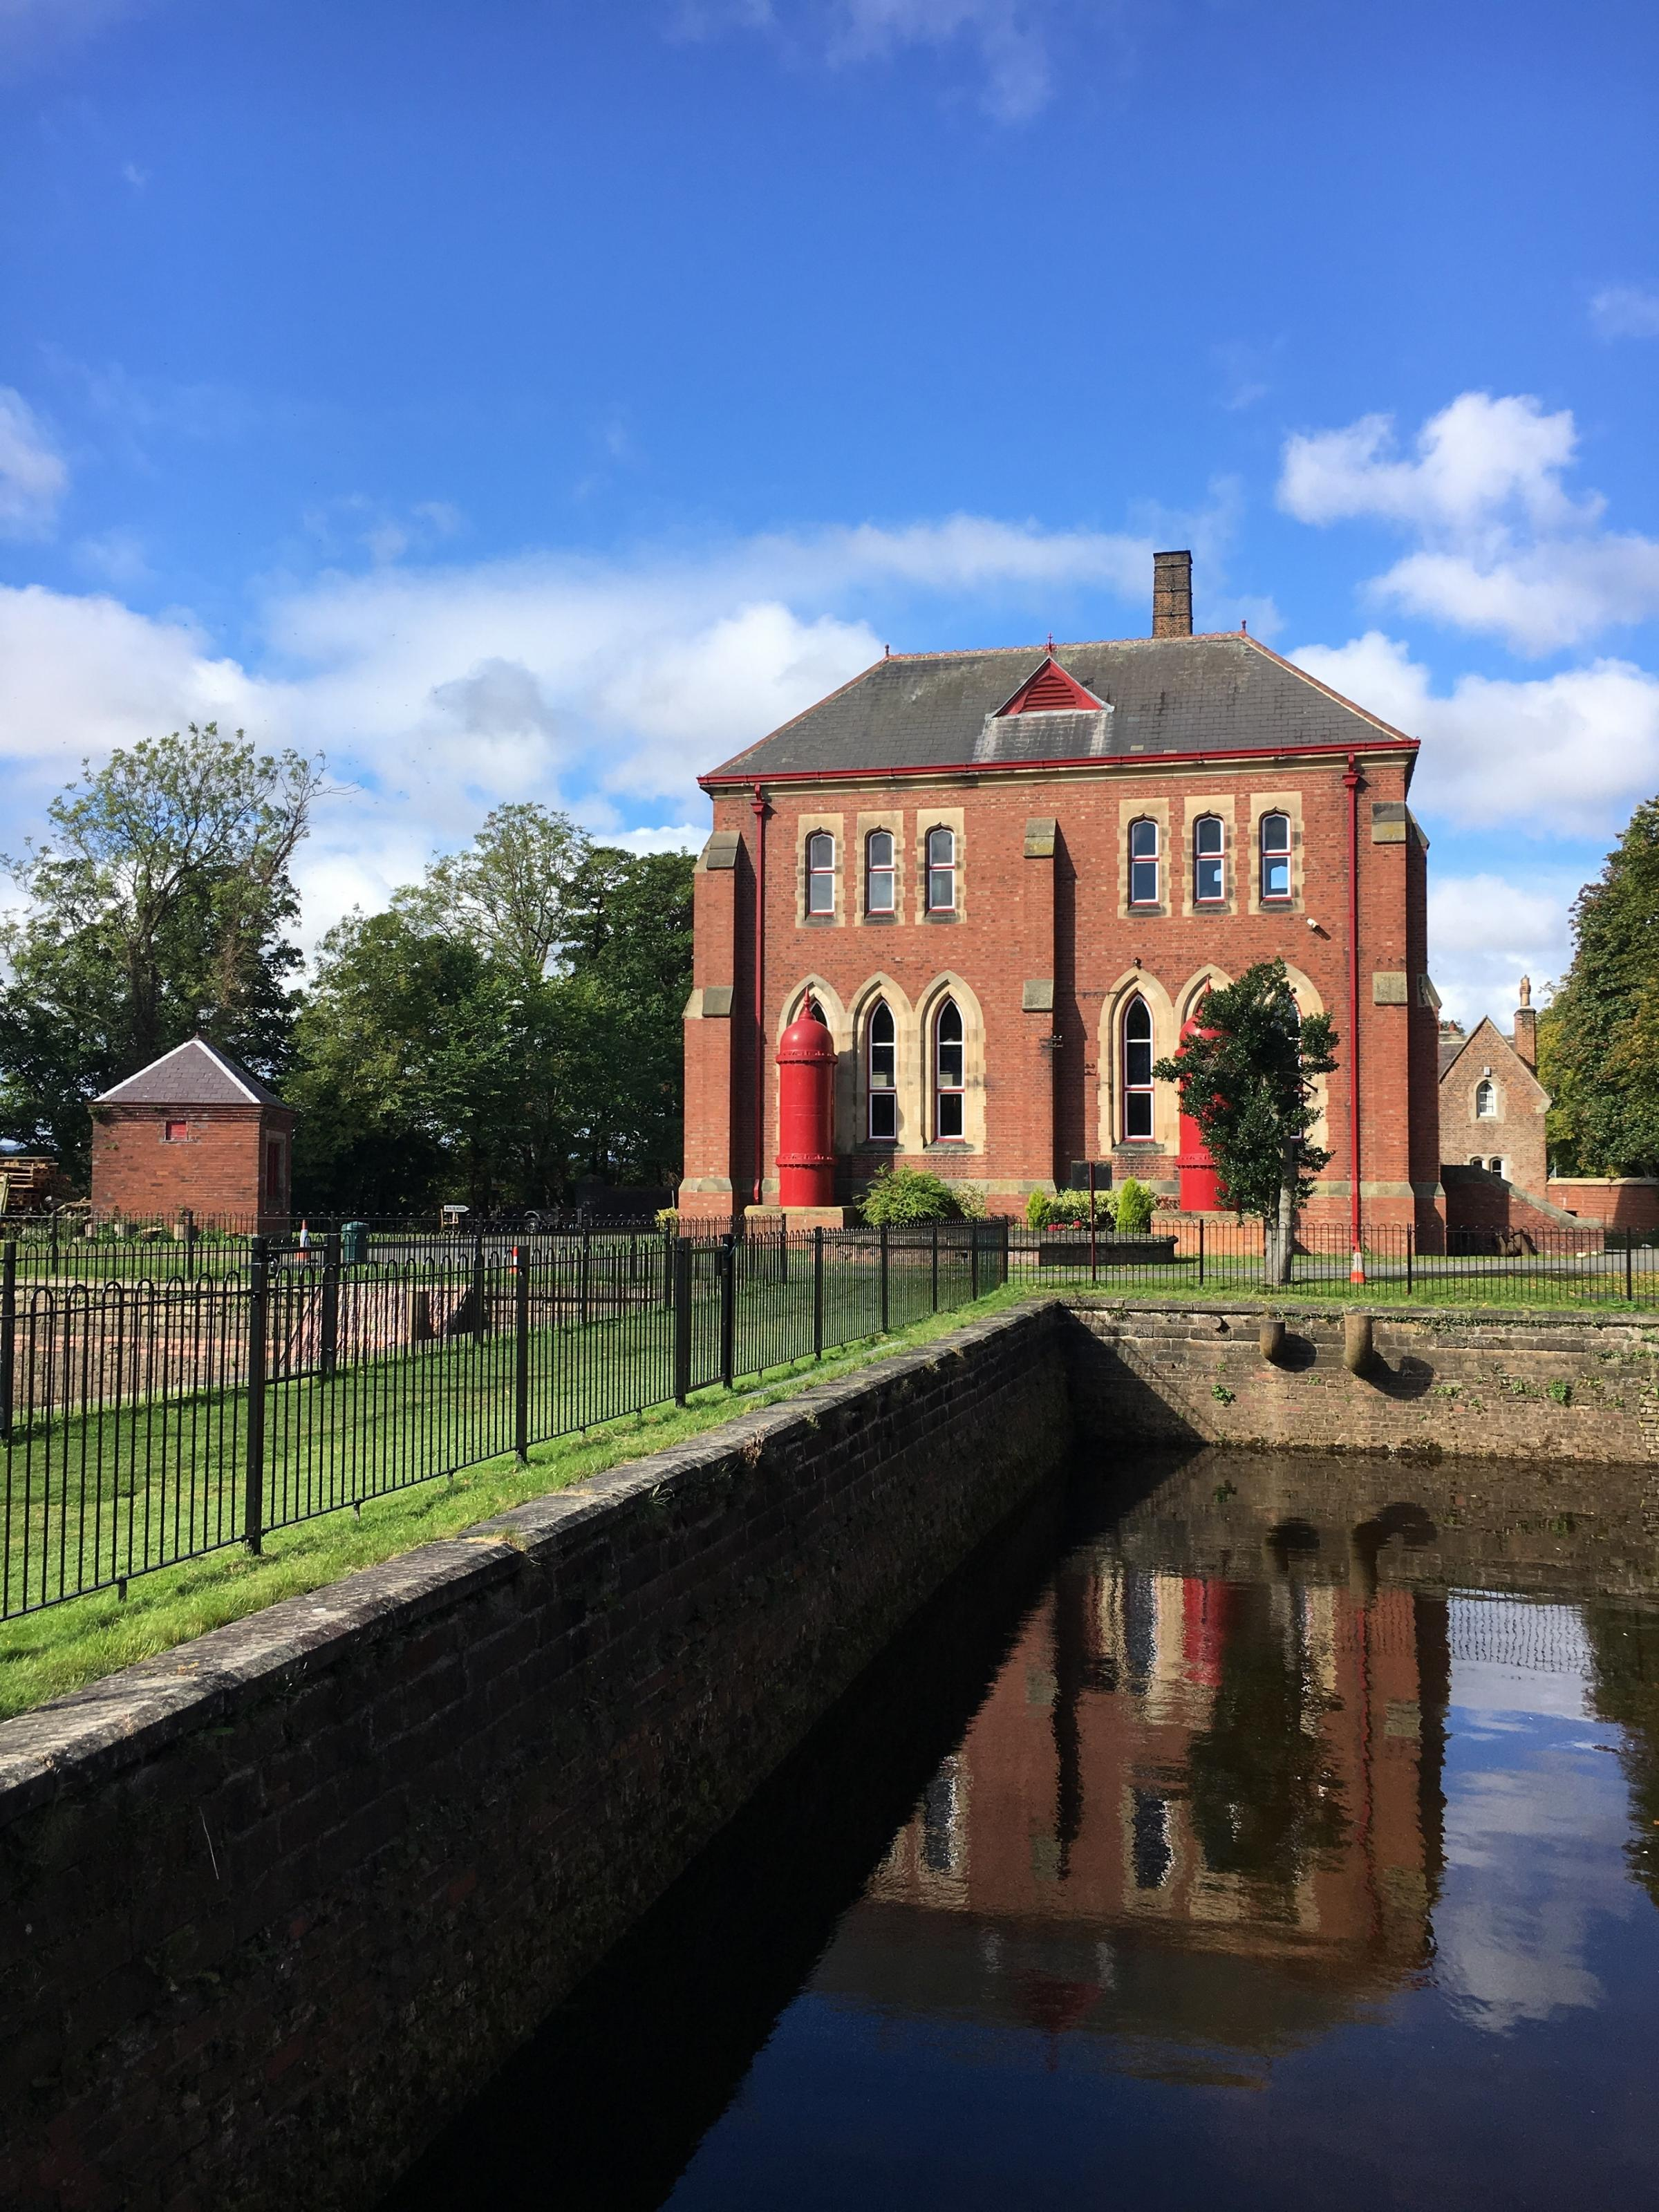 The Tees Cottage Pumping Station in Darlington. Picture: NORTHUMBRIAN WATER